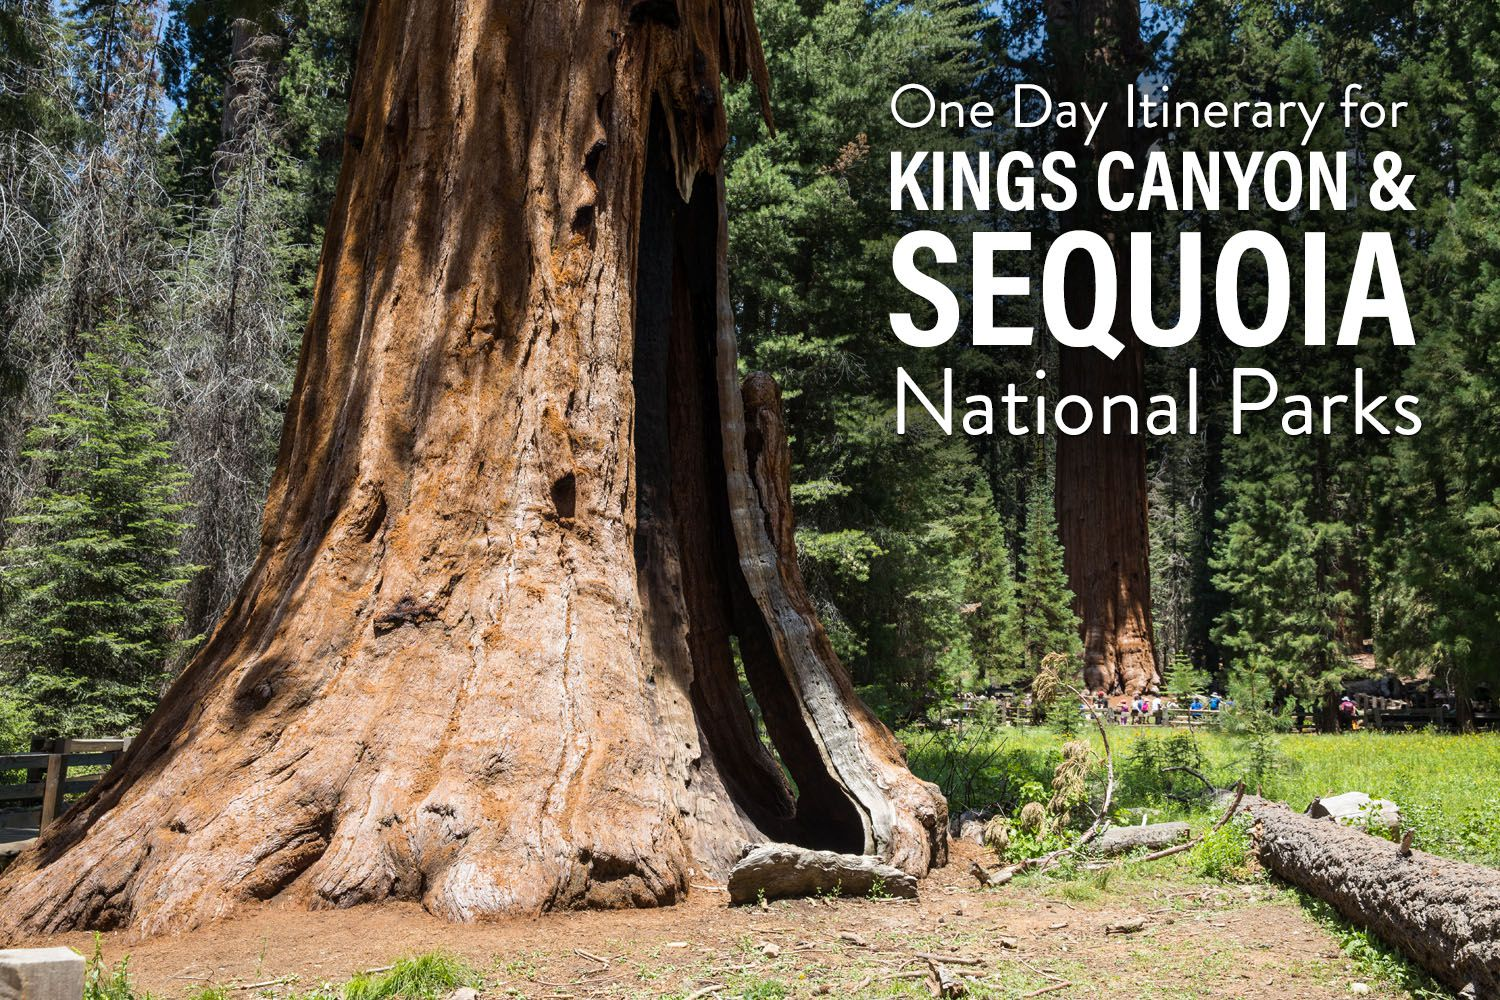 Kings Canyon and Sequoia